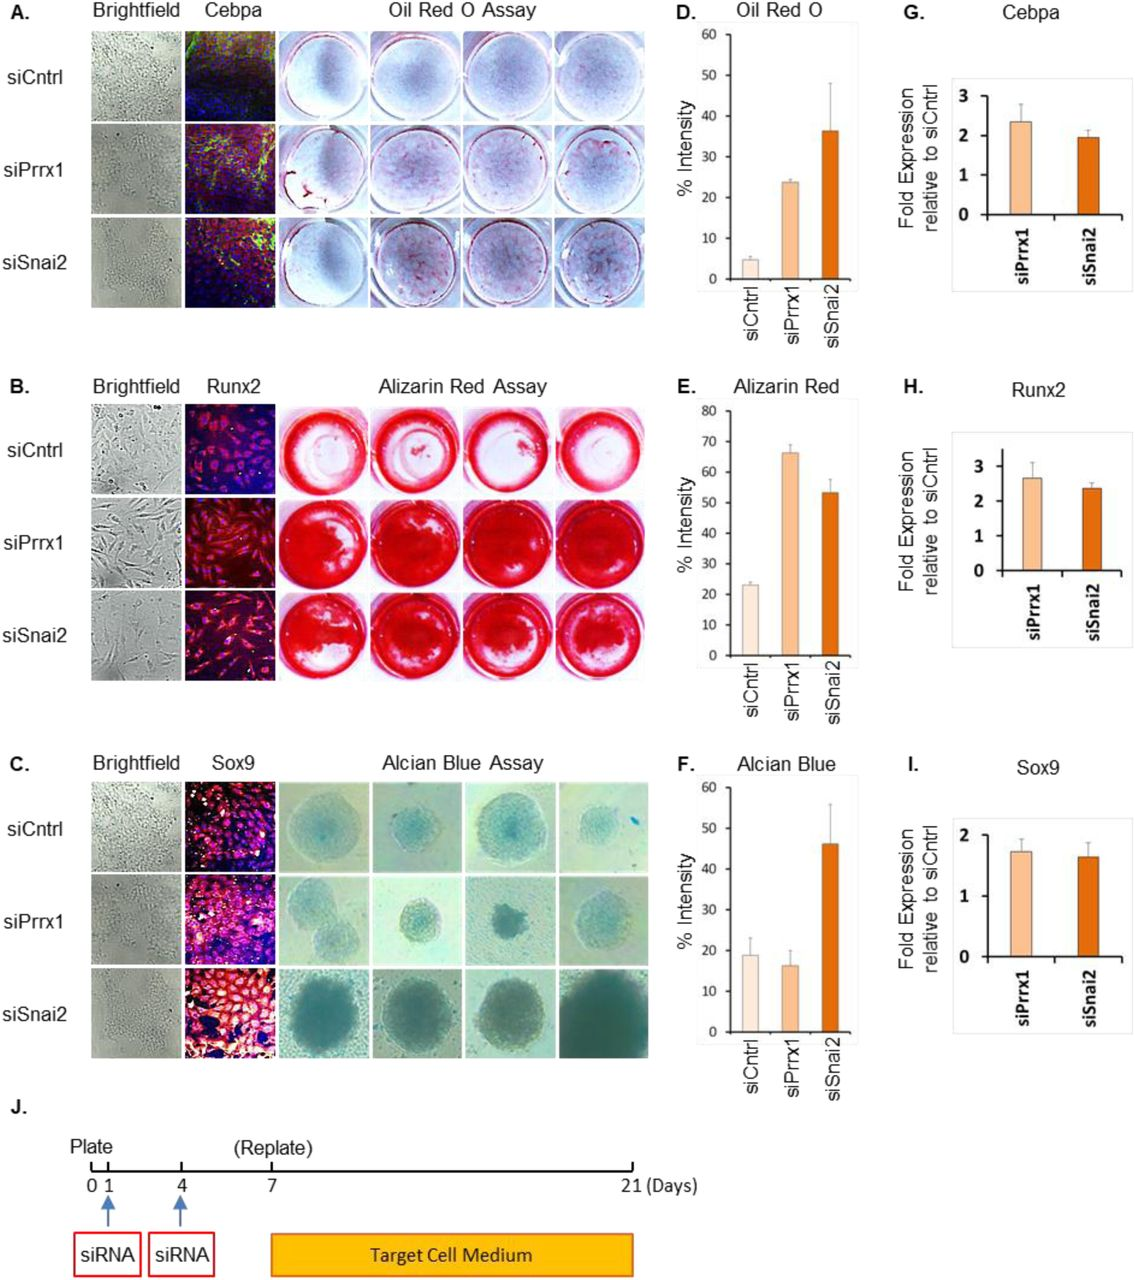 Dedifferentiation of Rat Embryonic Fibroblasts to dMSCs and dPSCs by transient repression of Snai2 and Prrx1. A,D) Brightfield photomicrographs of REFs transfected with siCntrl, siPrrx1 siSnai2, (Rows 1,2 and 3) that were incubated in MSC media or Rat ESC media for 14 days. IF photomicrographs assess expression of MSC TF Myc (Red) and ESC TFs (Sox2 and Nanog in Red) and DAPI (Blue) in all three groups (Scale bar, 10µm). D) (Column 4) Brightfield photomicrographs of free-floating embryoid bodies on day 8 of suspension culture in differentiation media following transfection of REFs with siCntrl, siPrrx1 siSnai2 and incubation in Rat ESC media for 14 days. B) MSC activity was ascertained using Alkaline Phosphatase Assay. C,E) q-RTPCR analysis to assess increase in relative expression of Myc, Klf4, Sox2 and Nanog compared to housekeeping gene (B2m) in siPrrx1 and siSnai2 treated REFs when incubated in MSC and ESC media respectively for 14 days. F, G and H) IF Confocal microscopy images assess expression of Ectodermal TFs Sox2 (green) and Otx-2 (red), Mesodermal TFs Brachyury (green) and Hand1 (red), and Endodermal TFs Gata-4 (green) and Sox17 (red) of embryoid bodies at Day 8 in the siSnai2 group, nuclear counterstain DAPI (blue).